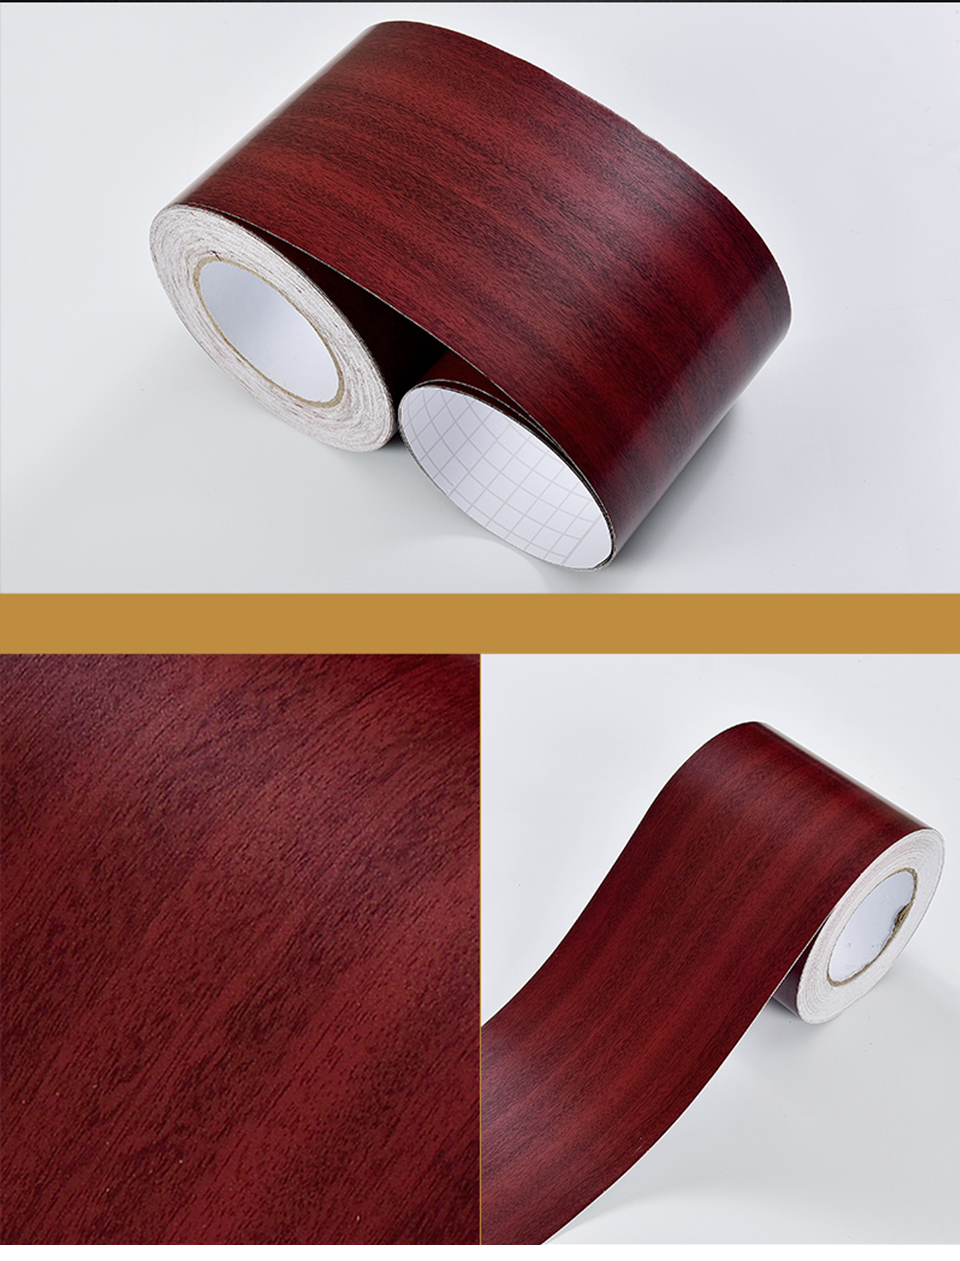 Wood Self Adhesive Window Decal Living Room Floor Border Skirting Contact Paper Waterproof Waist Line Wallpaper Home Improvement H6e2d414ebbe44280ad29634bc1c446f2T